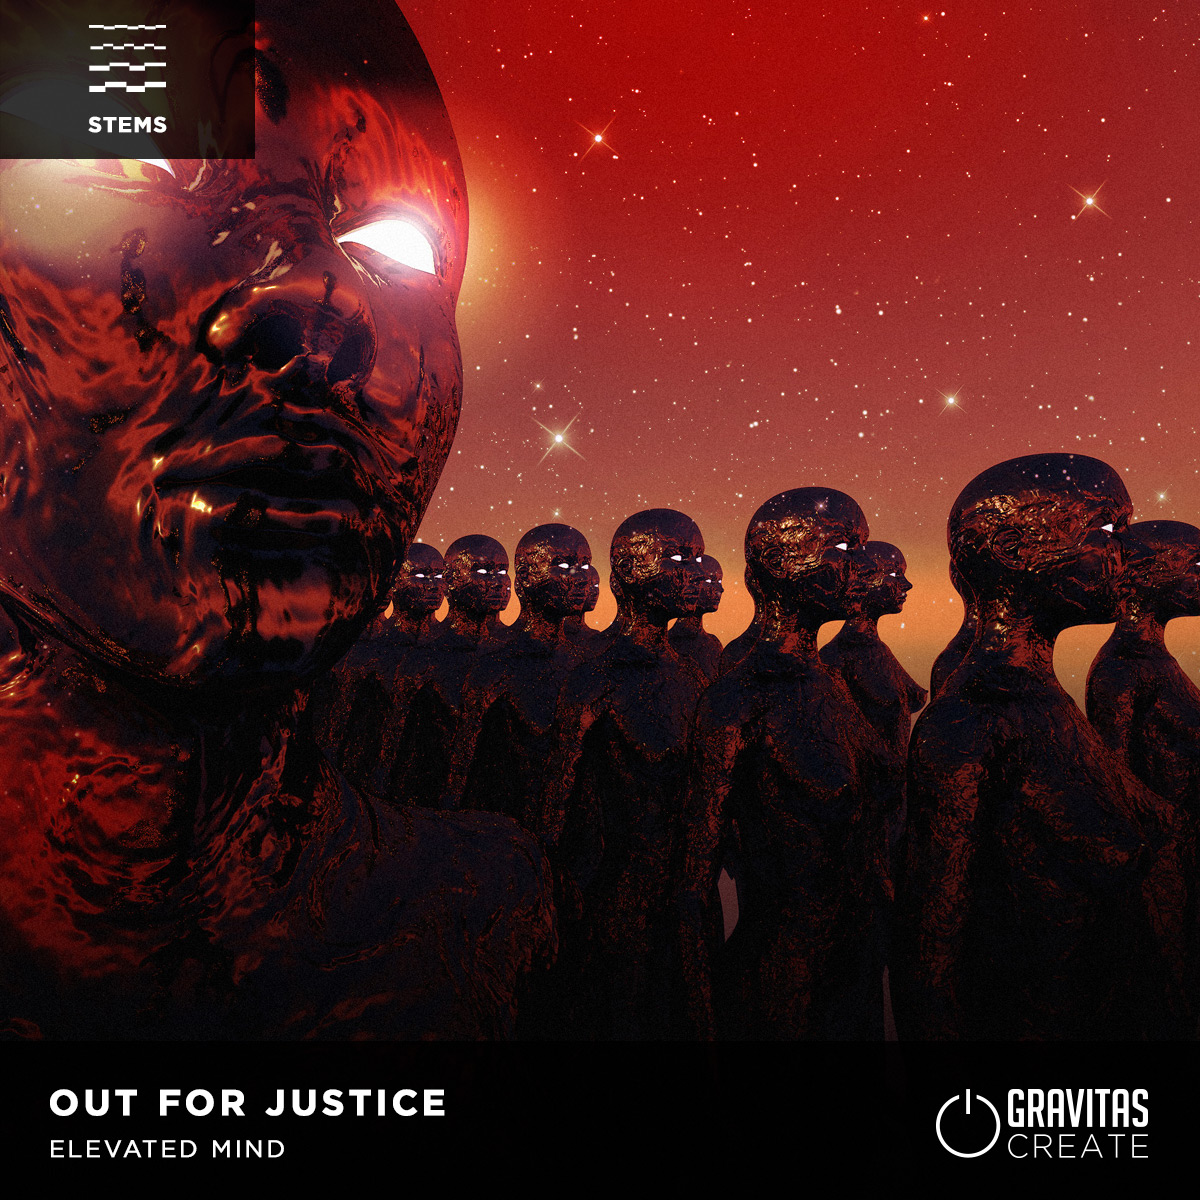 Elevated Mind - Out for Justice Song Stems - Gravitas Create